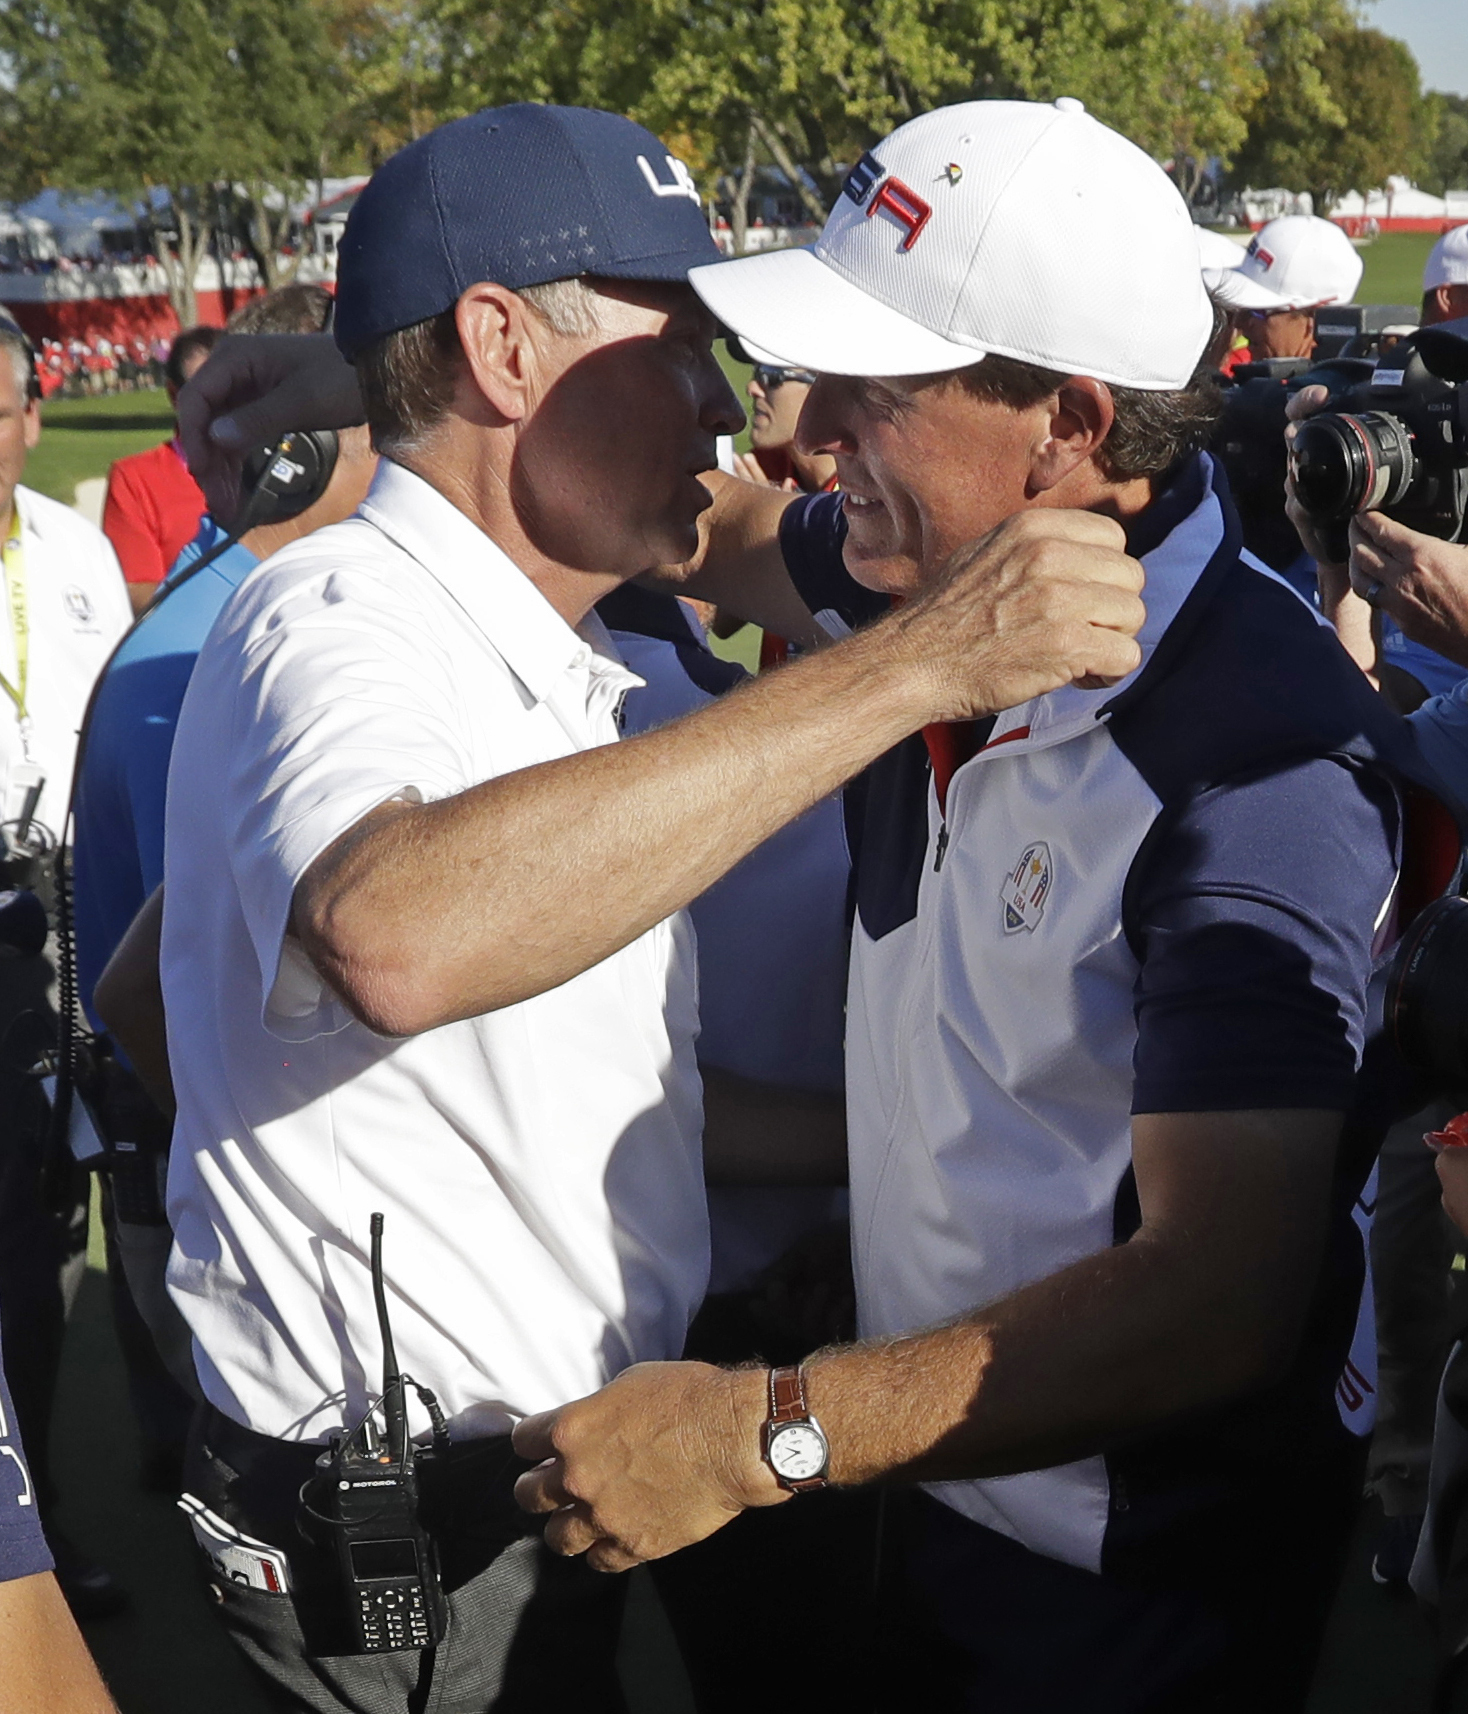 United States captain Davis Love III hugs United States Phil Mickelson after the USA team won the Ryder Cup golf tournament Sunday, Oct. 2, 2016, at Hazeltine National Golf Club in Chaska, Minn. (AP Photo/Chris Carlson)